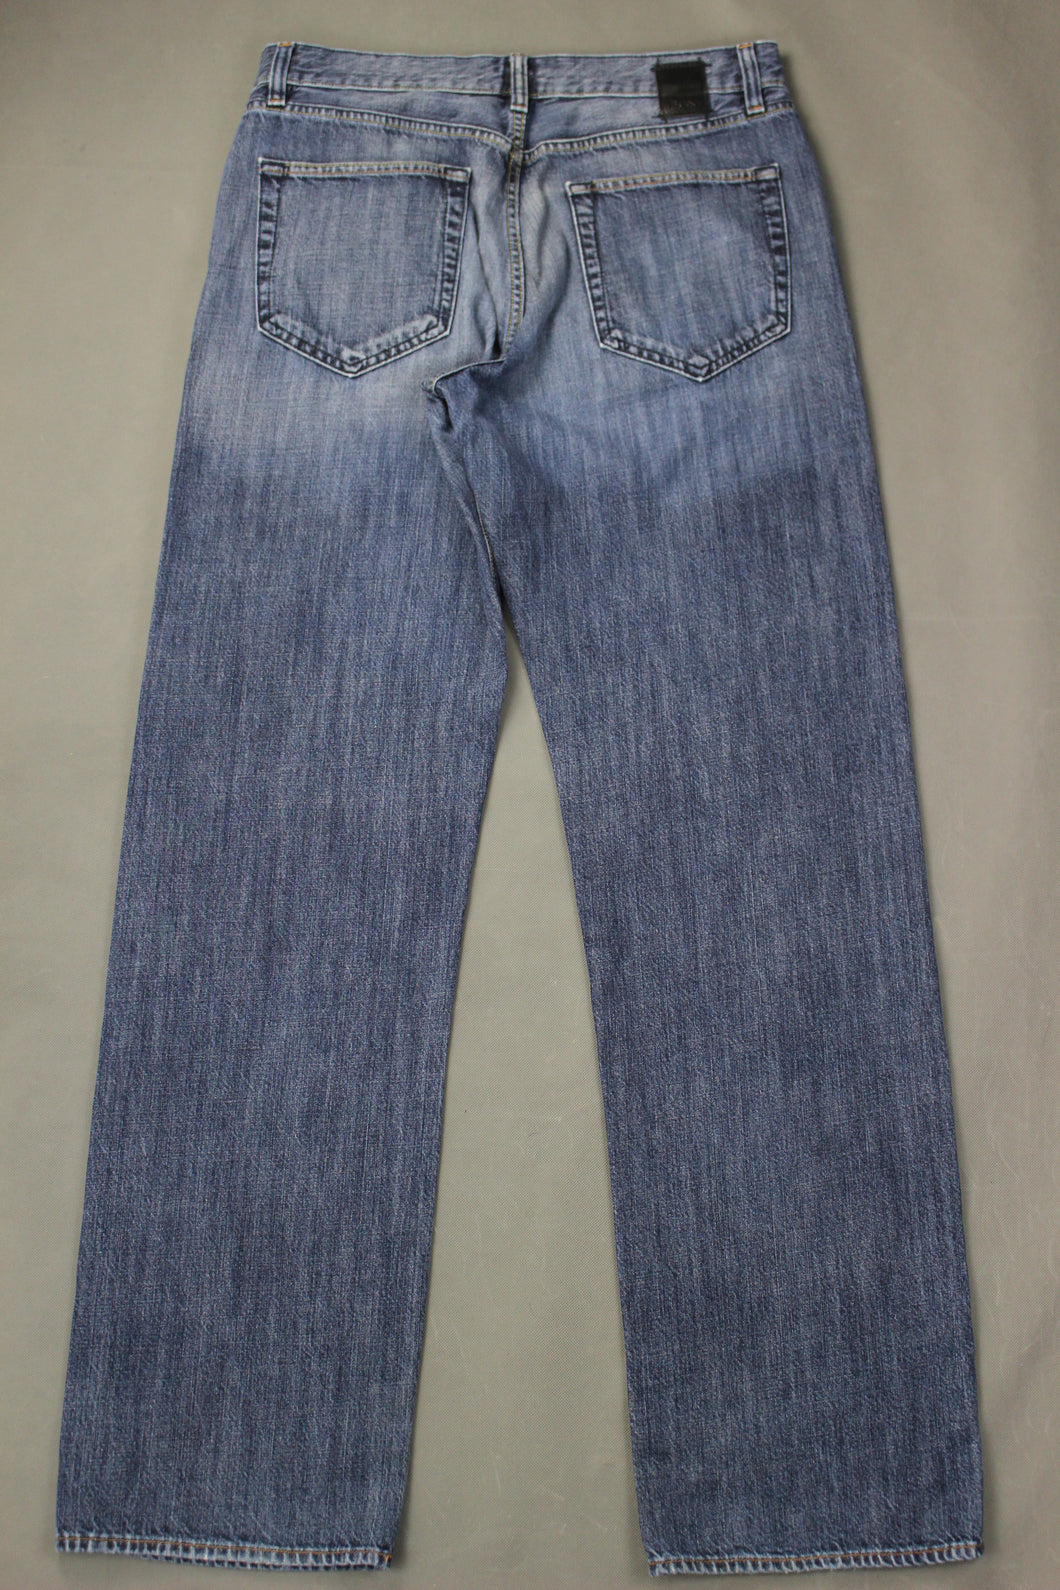 HUGO BOSS Mens JACKSONS Blue Denim JEANS Size Waist 34